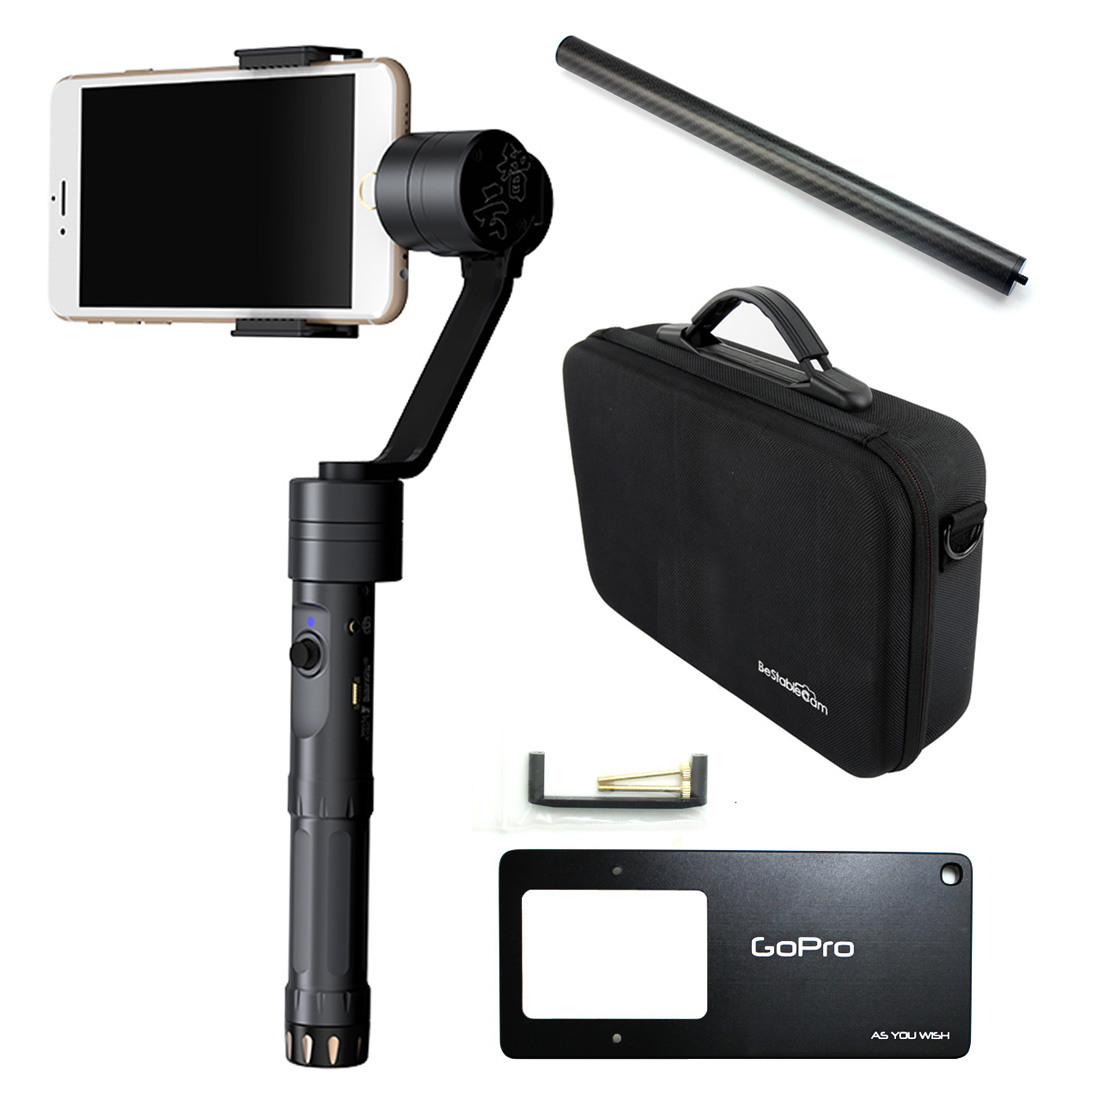 Zhiyun Z1-Smooth-II Handheld Gimbal Stabilizer With Remote Portable Case Tube for smartphone in 6.5 Mount for Gopro 4 F18165-AB<br><br>Aliexpress